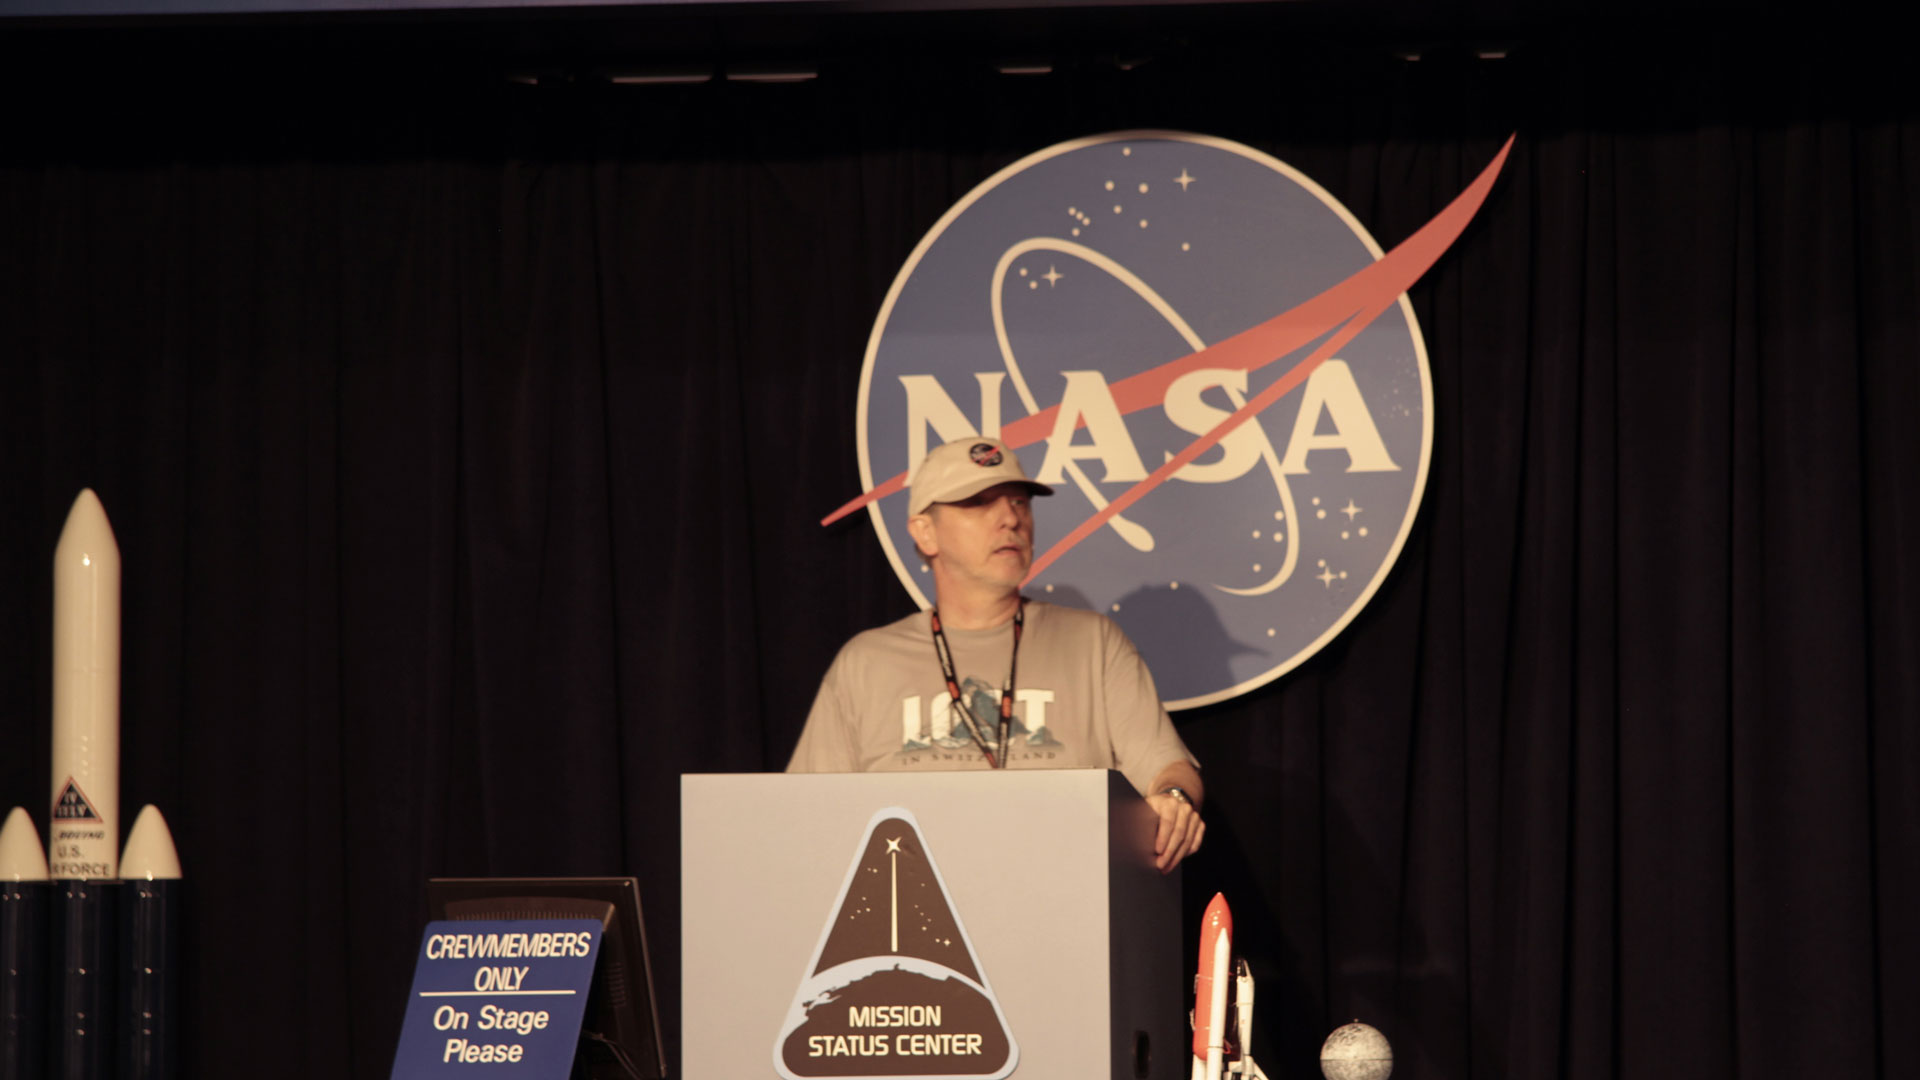 Gregor Spörri explains a scene from his novel: LOST GOD at the Kennedy Space Center.